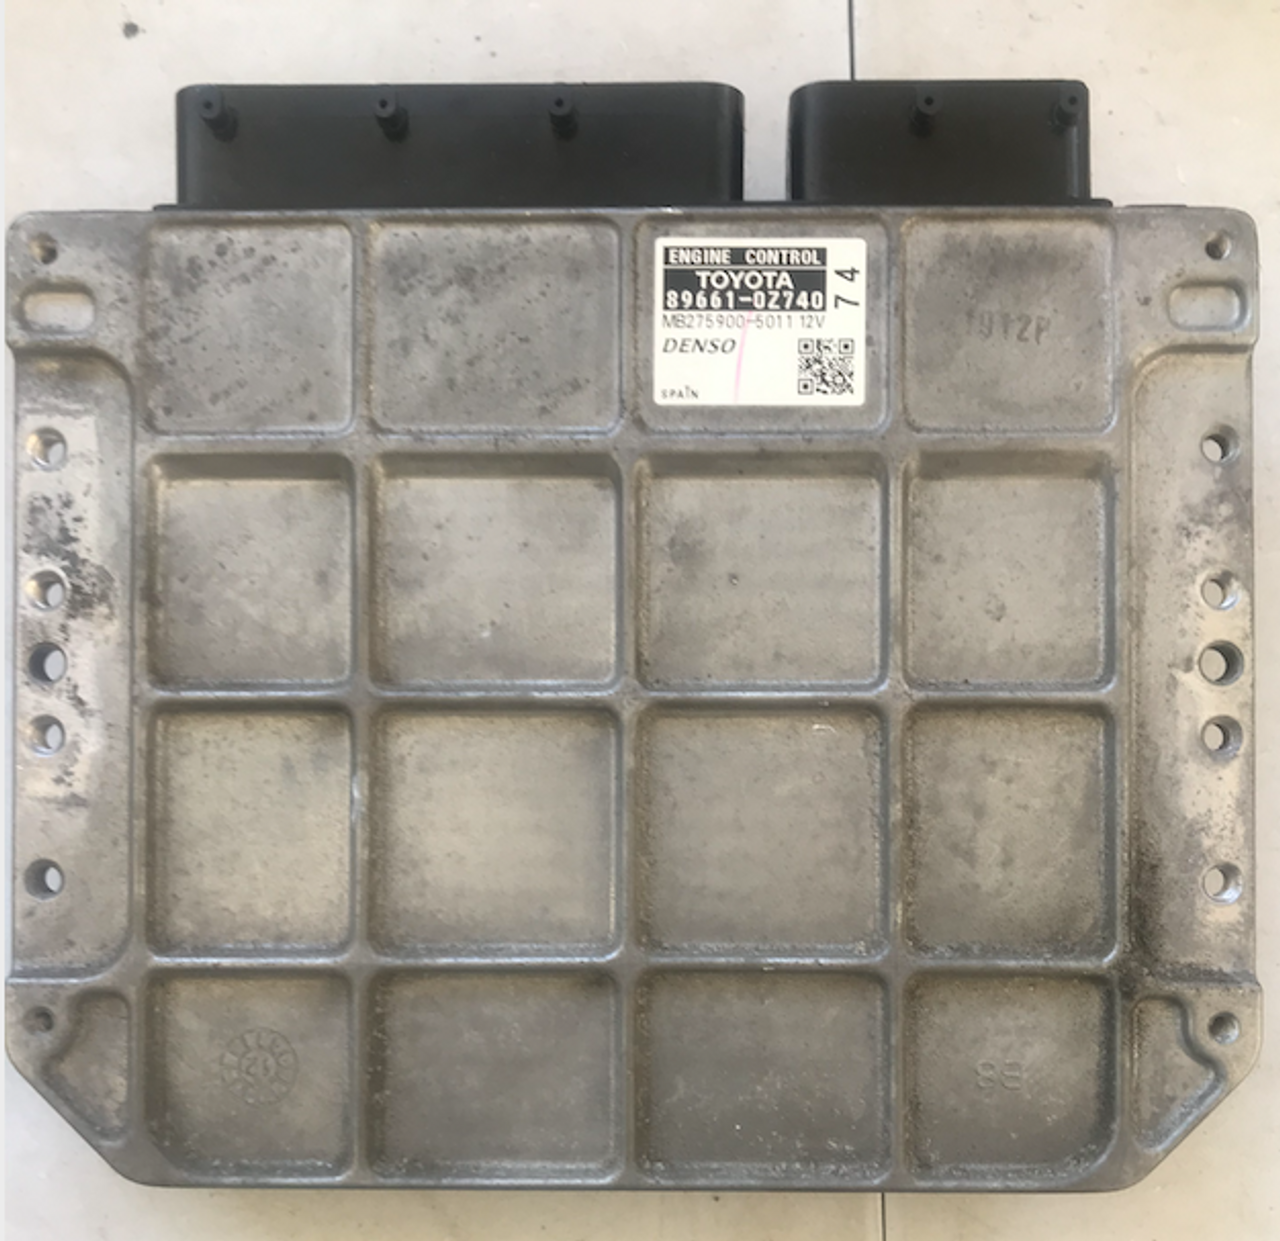 Denso Engine ECU, Toyota Auris, 89661-0Z740, MB275900-5011 12V, 74